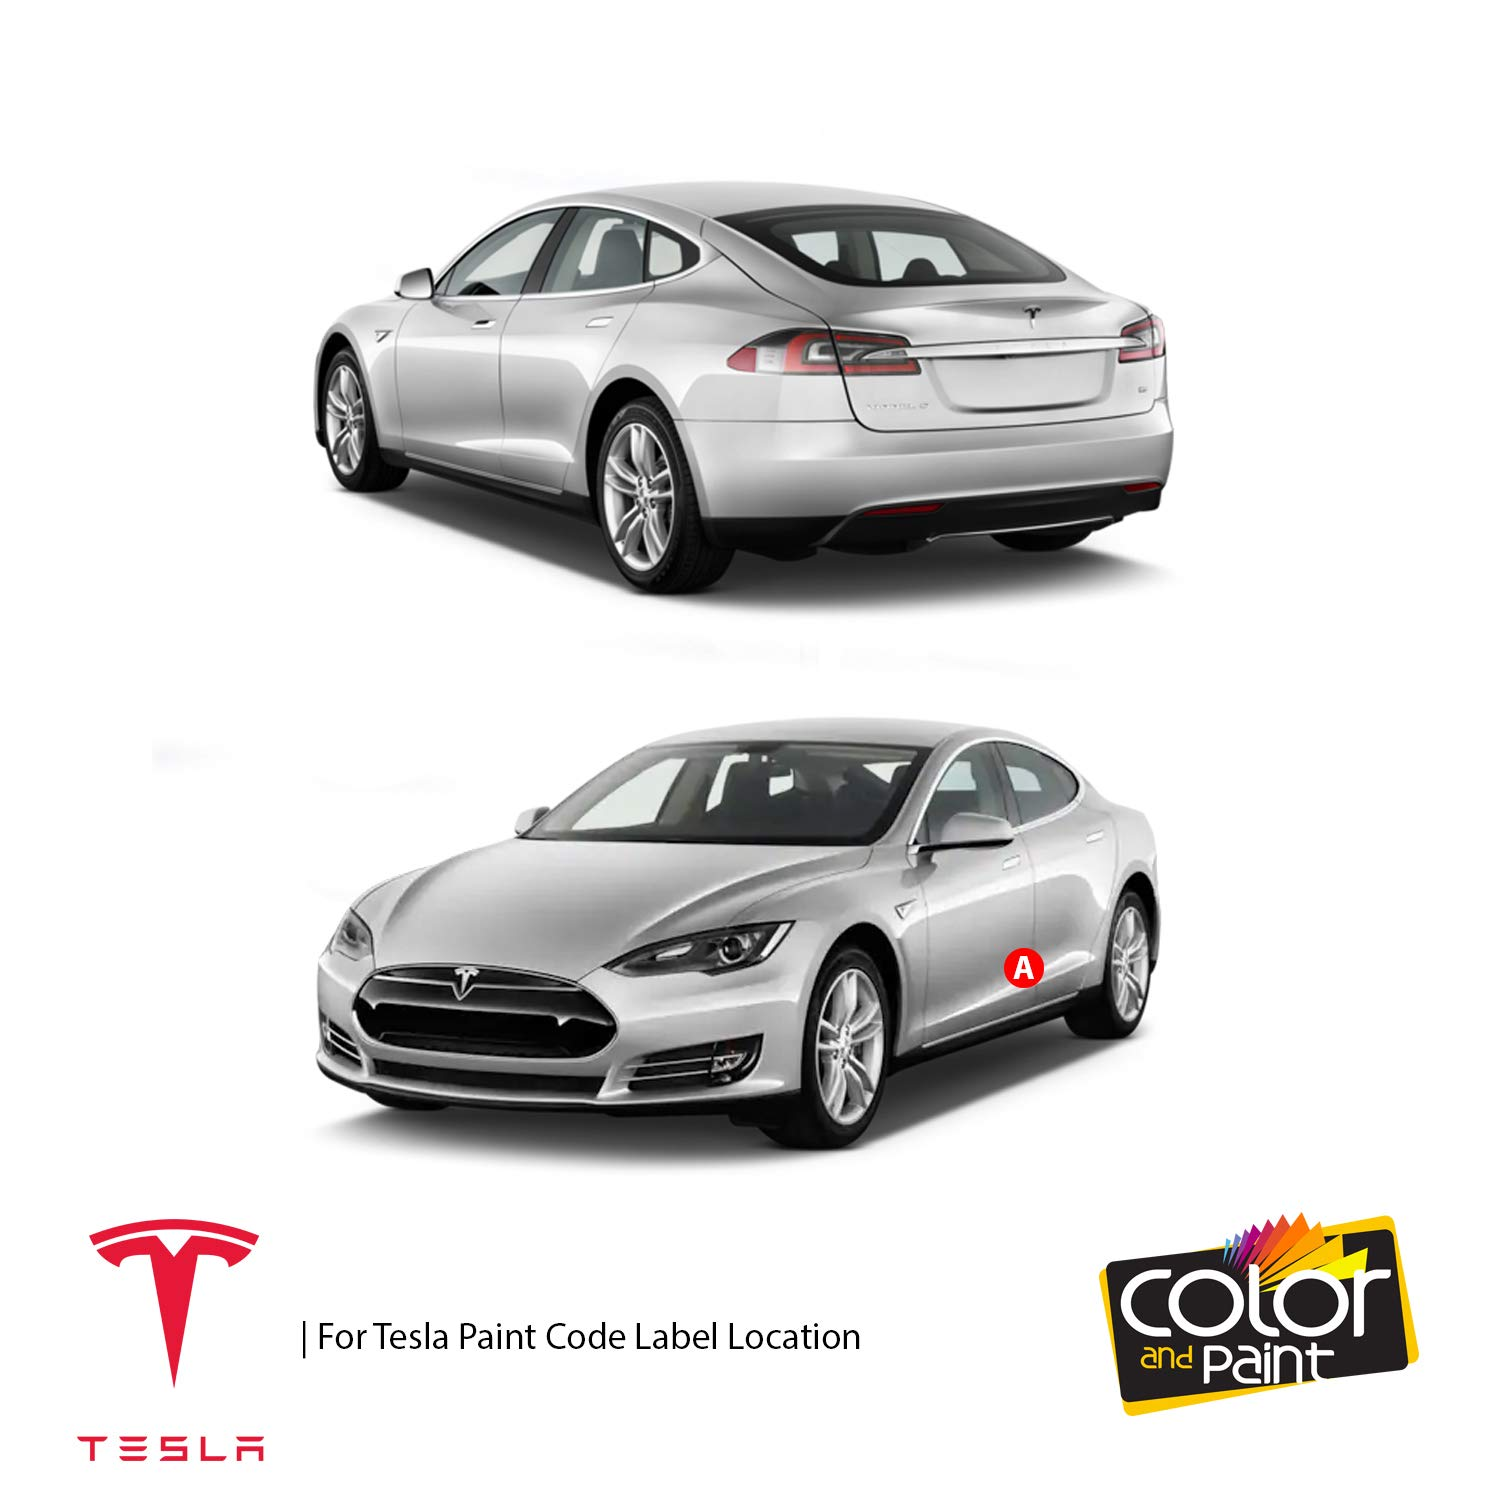 Amazon com: Tesla Model S/New RED Pearl - PPMR/Color and Paint Touch